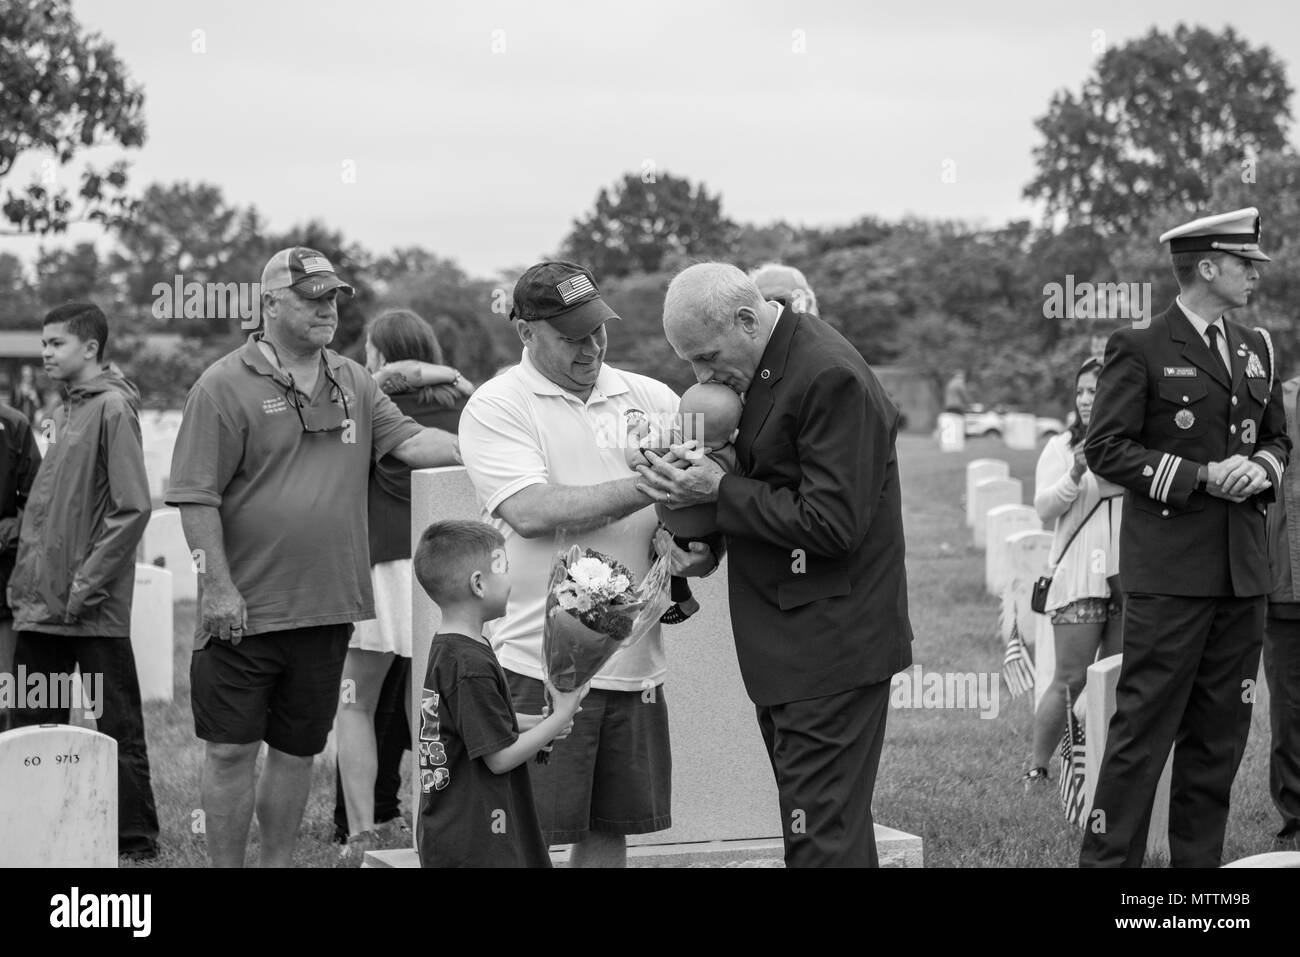 Chief of Staff John Kelly (right) kisses the head of a visitor's child in Section 60 of Arlington National Cemetery, Arlington, Virginia, May 28, 2018. Following the Memorial Day Observance at the Memorial Amphitheater, Kelly came to Section 60 with his wife, Karen Hernest Kelly, to visit the gravesite of their son, U.S. Marine Corps 1st Lt. Robert Michael Kelly. Chief of Staff Kelly also spoke with other visitors, friends, and family members visiting gravesites in Section 60.(U.S. Army photo by Elizabeth Fraser / Arlington National Cemetery / released) (This image was created in color and cha - Stock Image